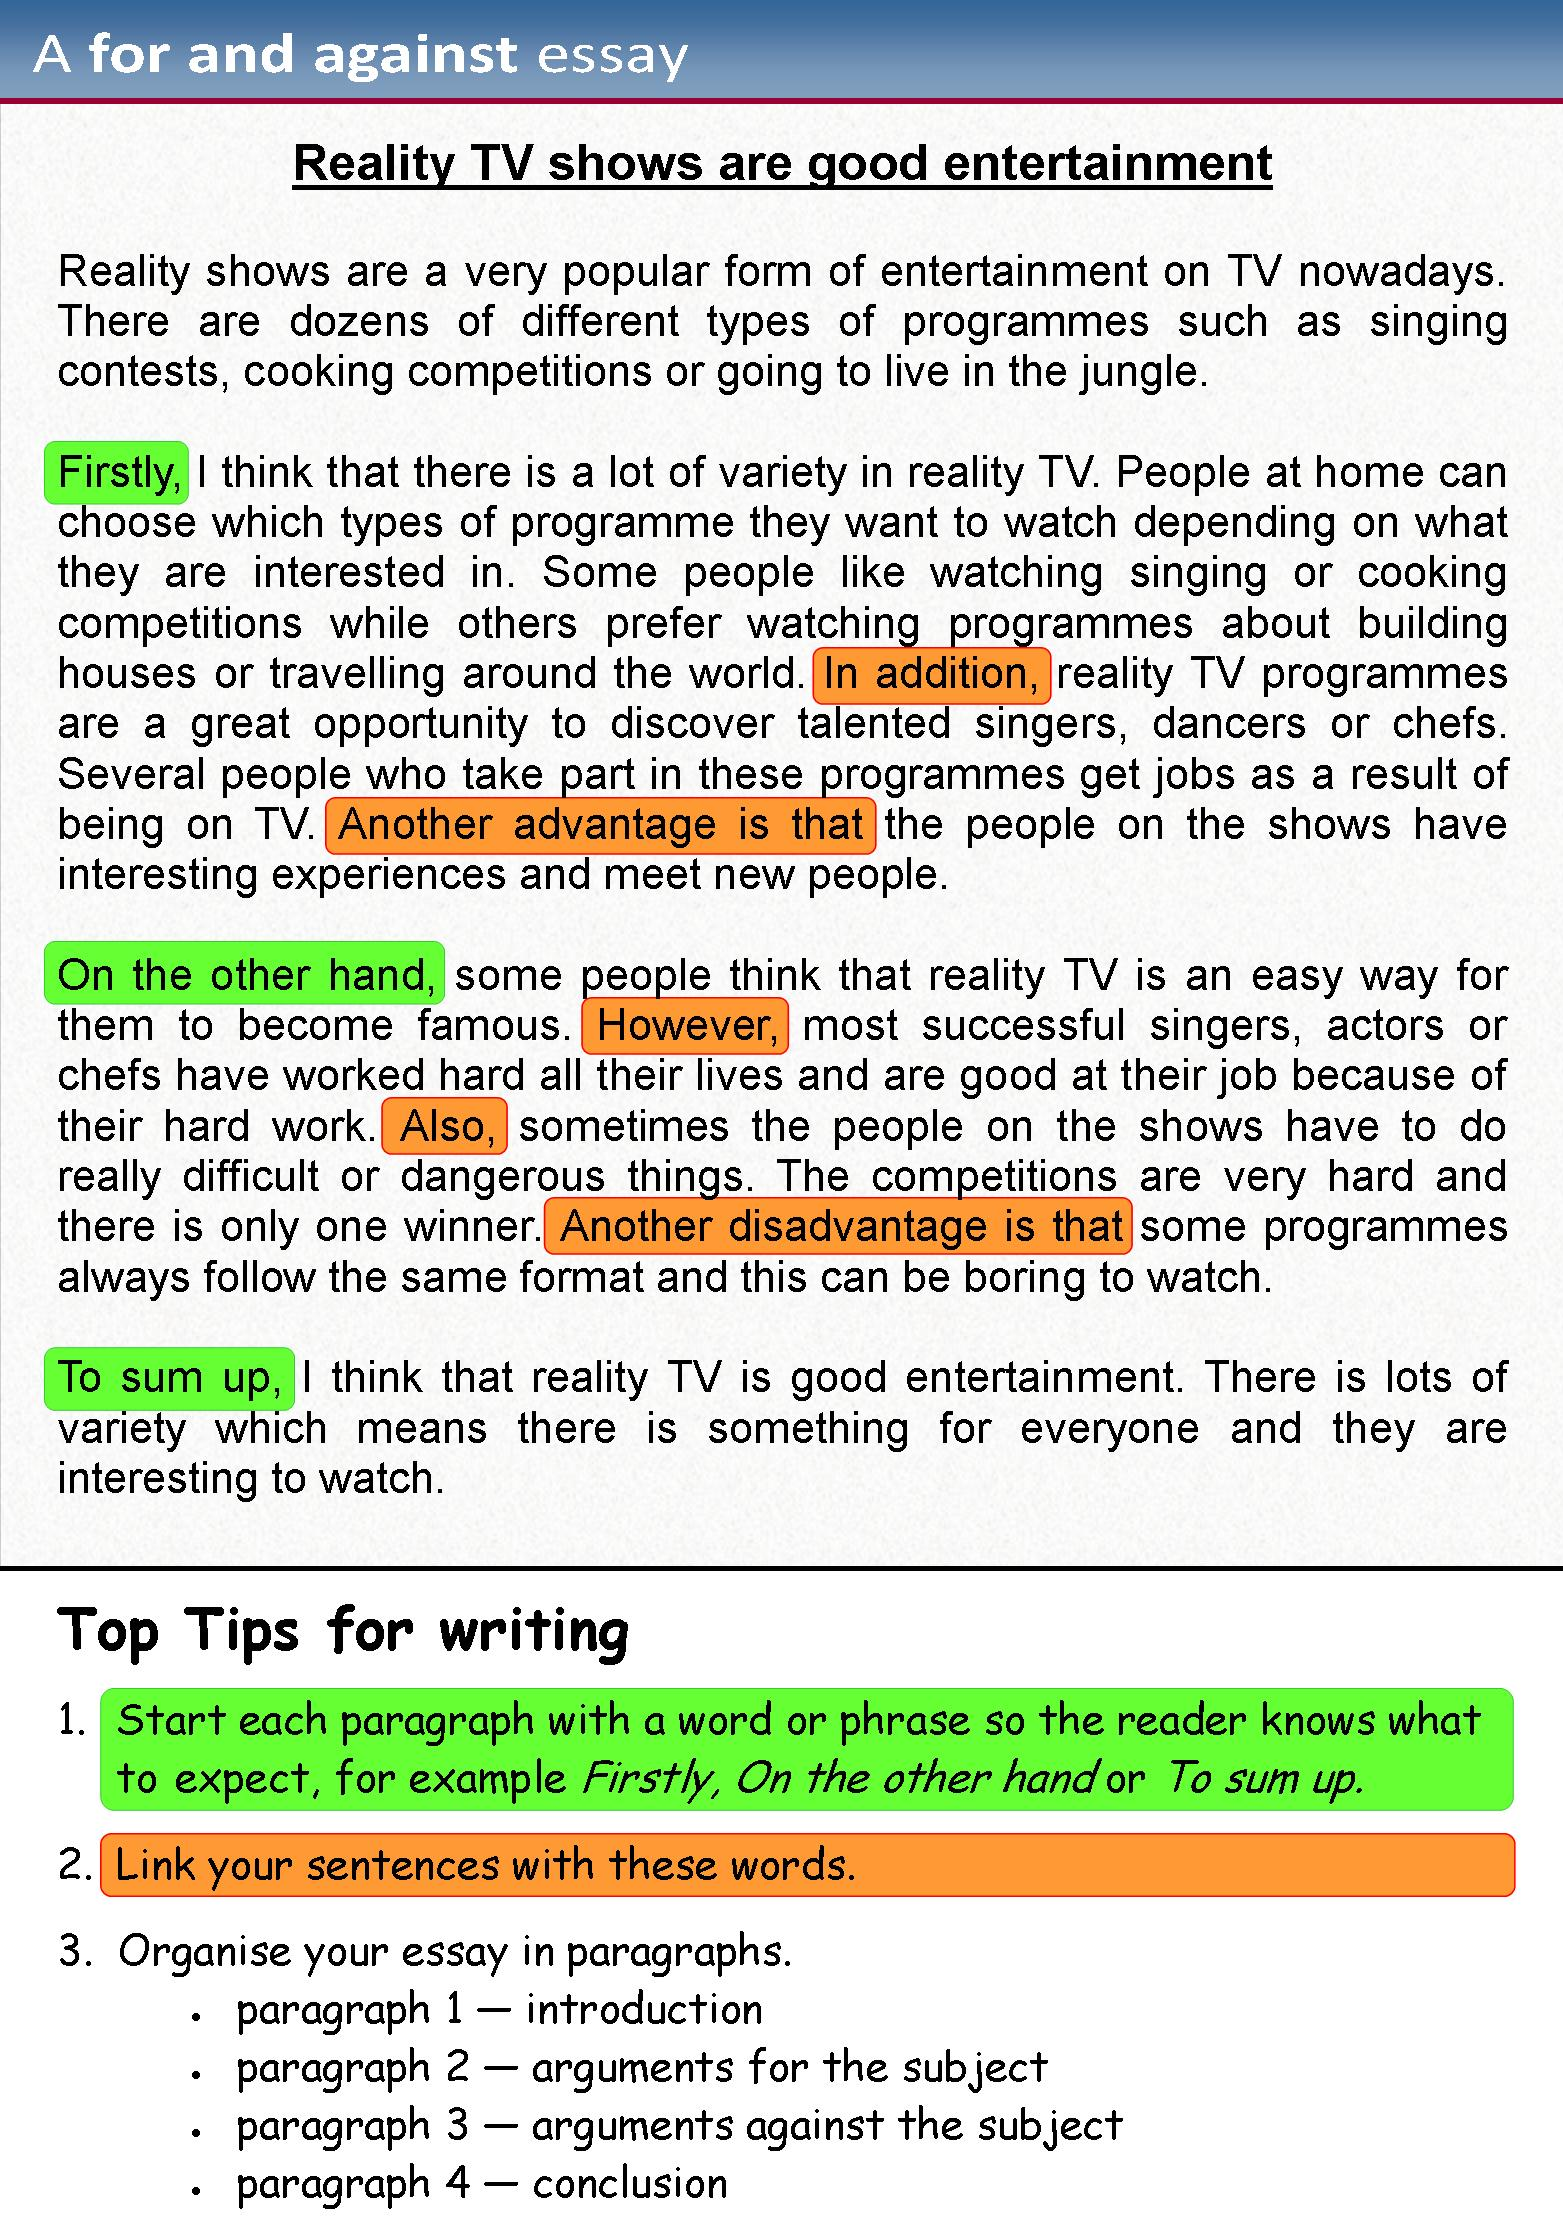 019 Essay Example How To Write And For Against 1 Unique An Outline 6th Grade Conclusion In Mla Format Full